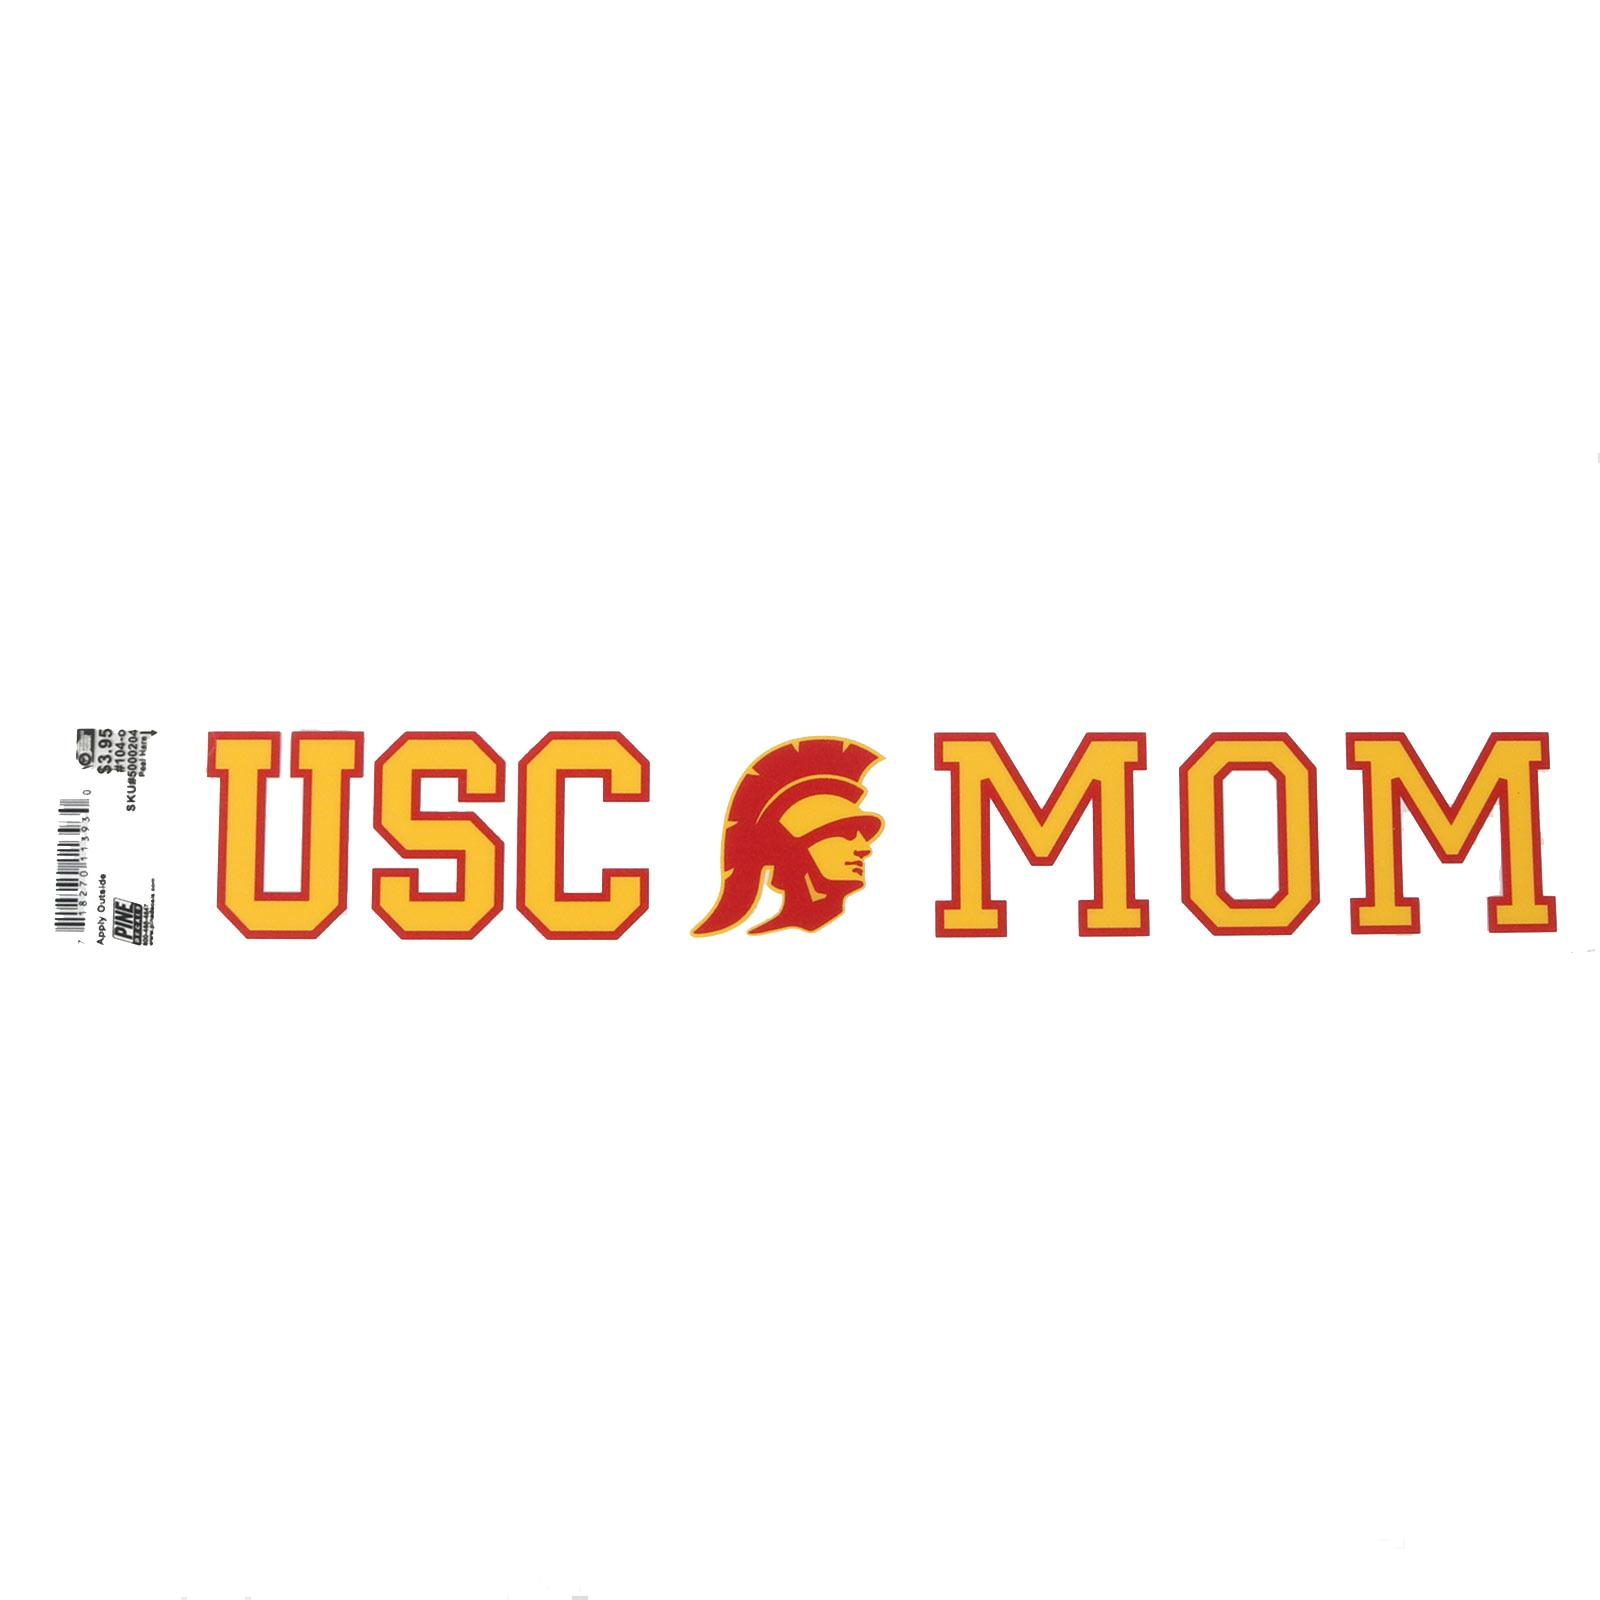 USC Tommy Head Mom Decal